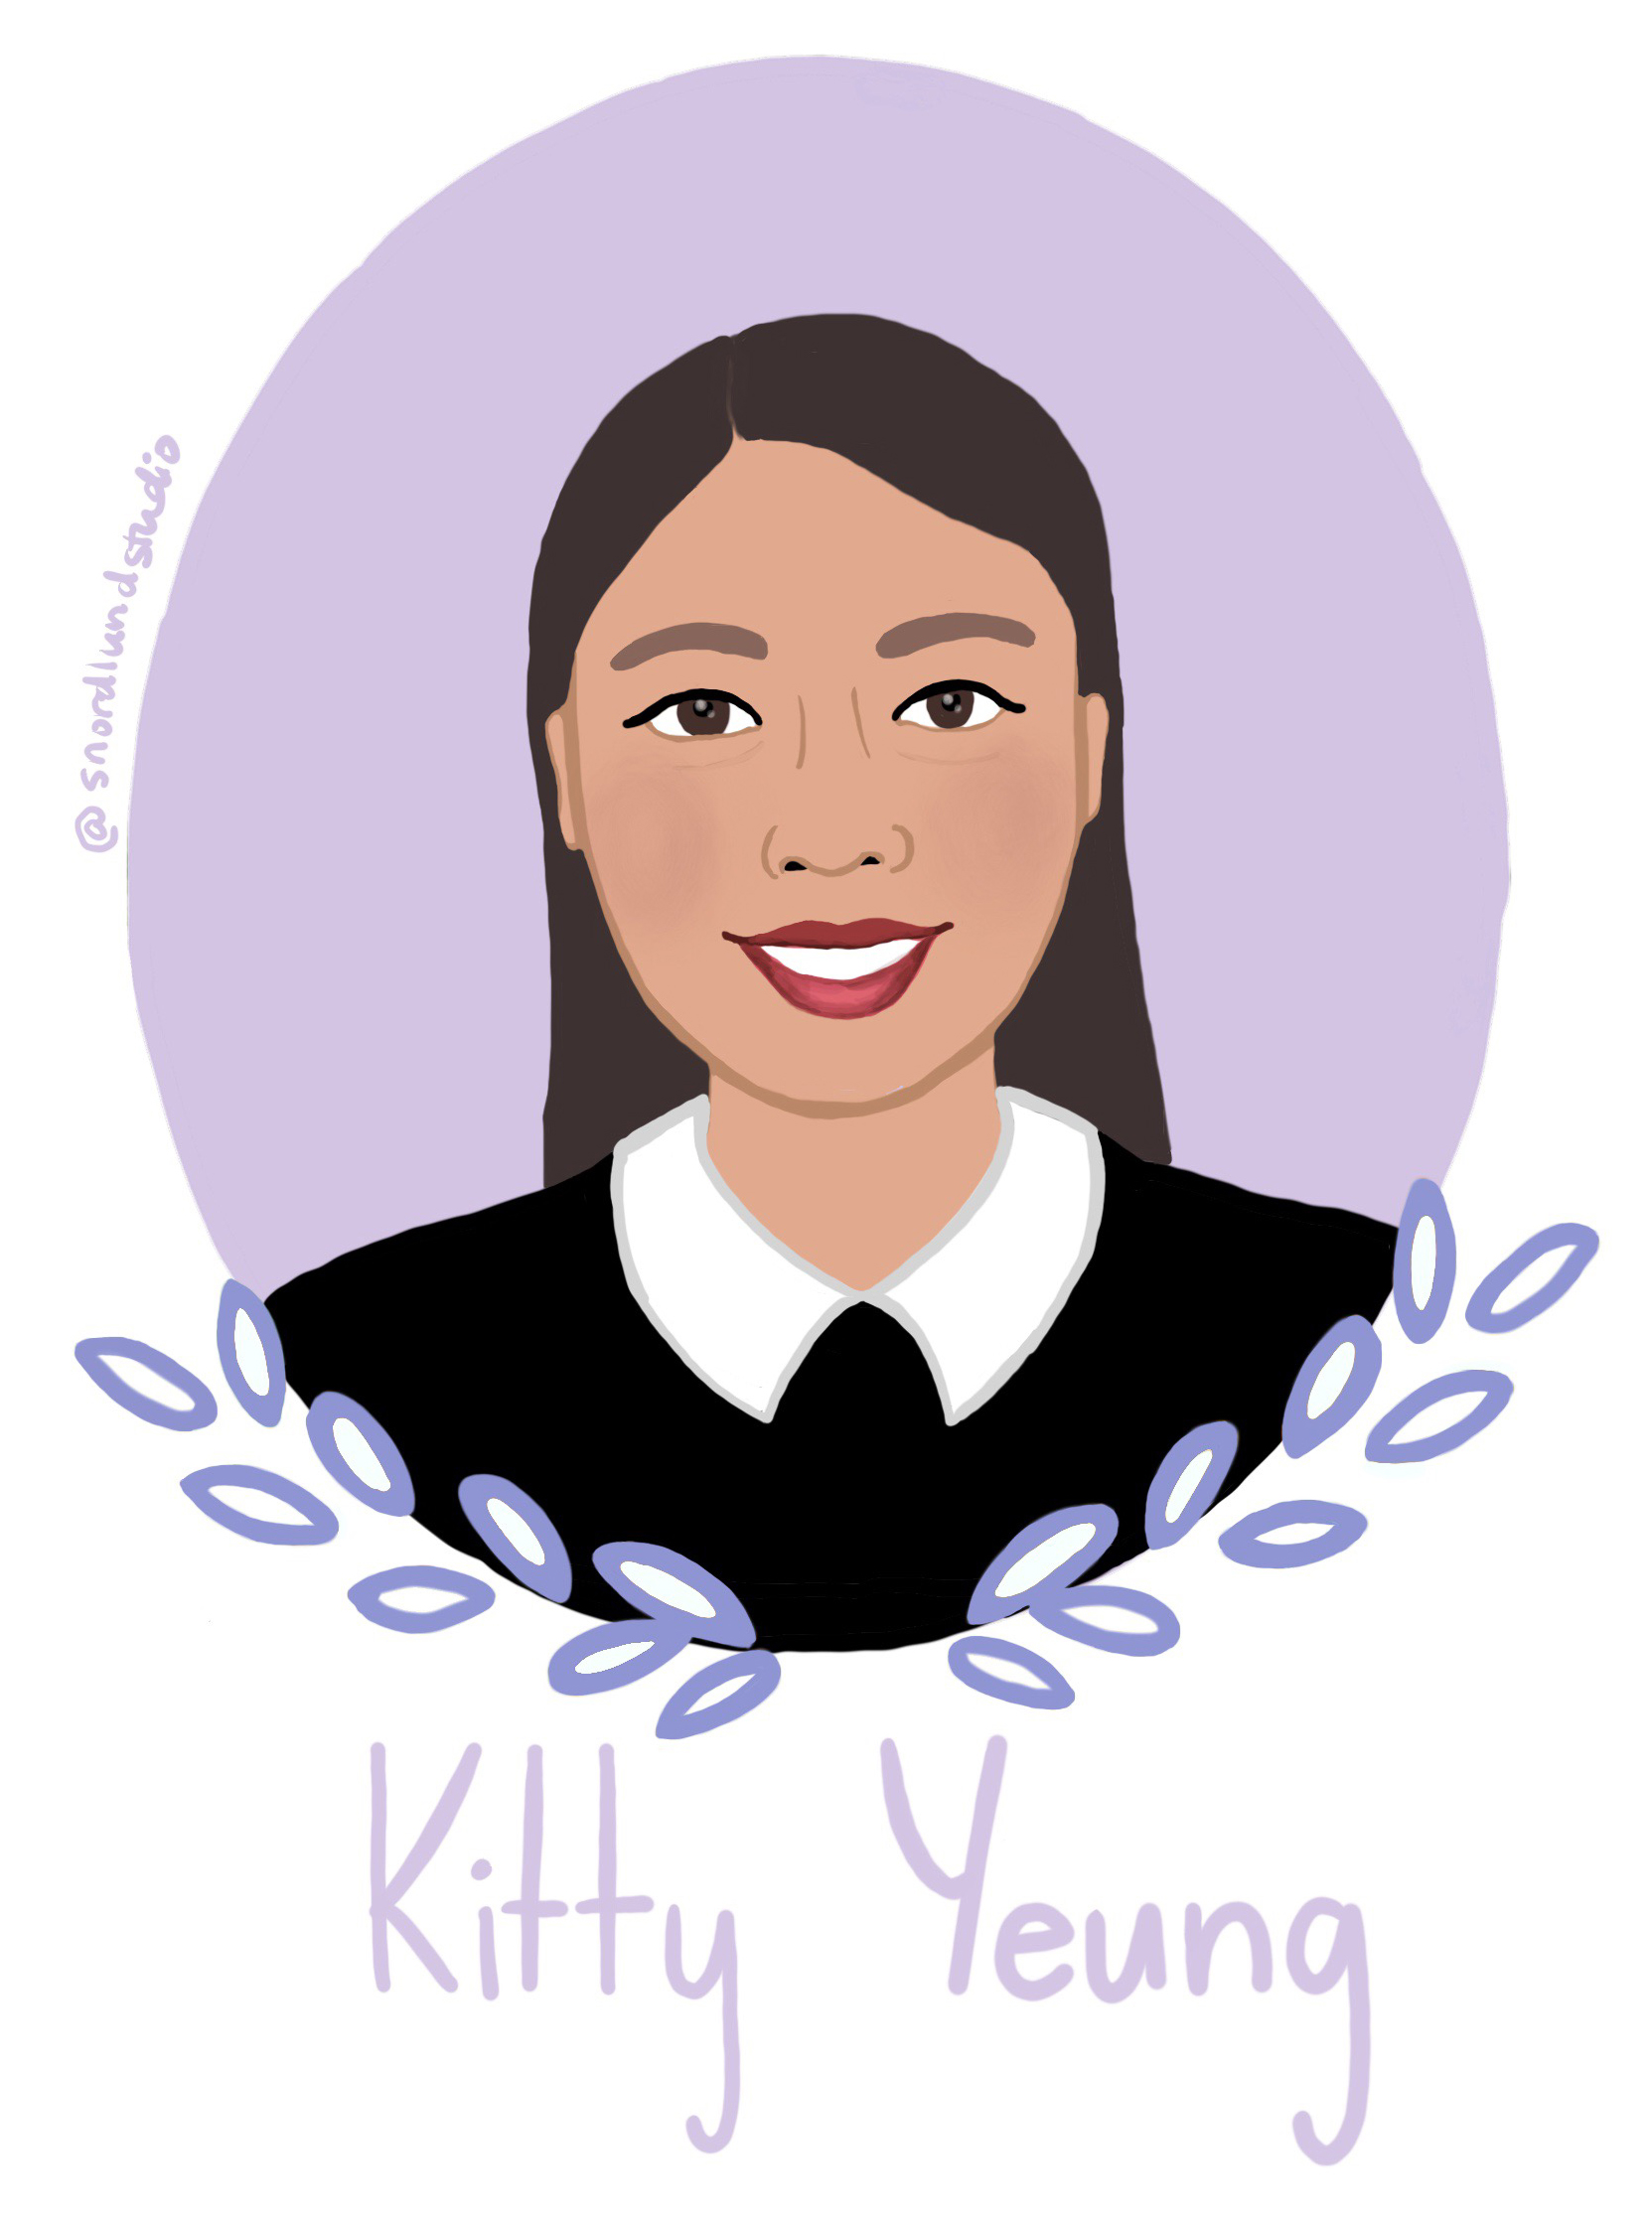 41. Dr. Kitty Yeung - Dr. Kitty Yeung is a physicist and artist. She has a PhD in physics, and she creates high-tech fashion designs.